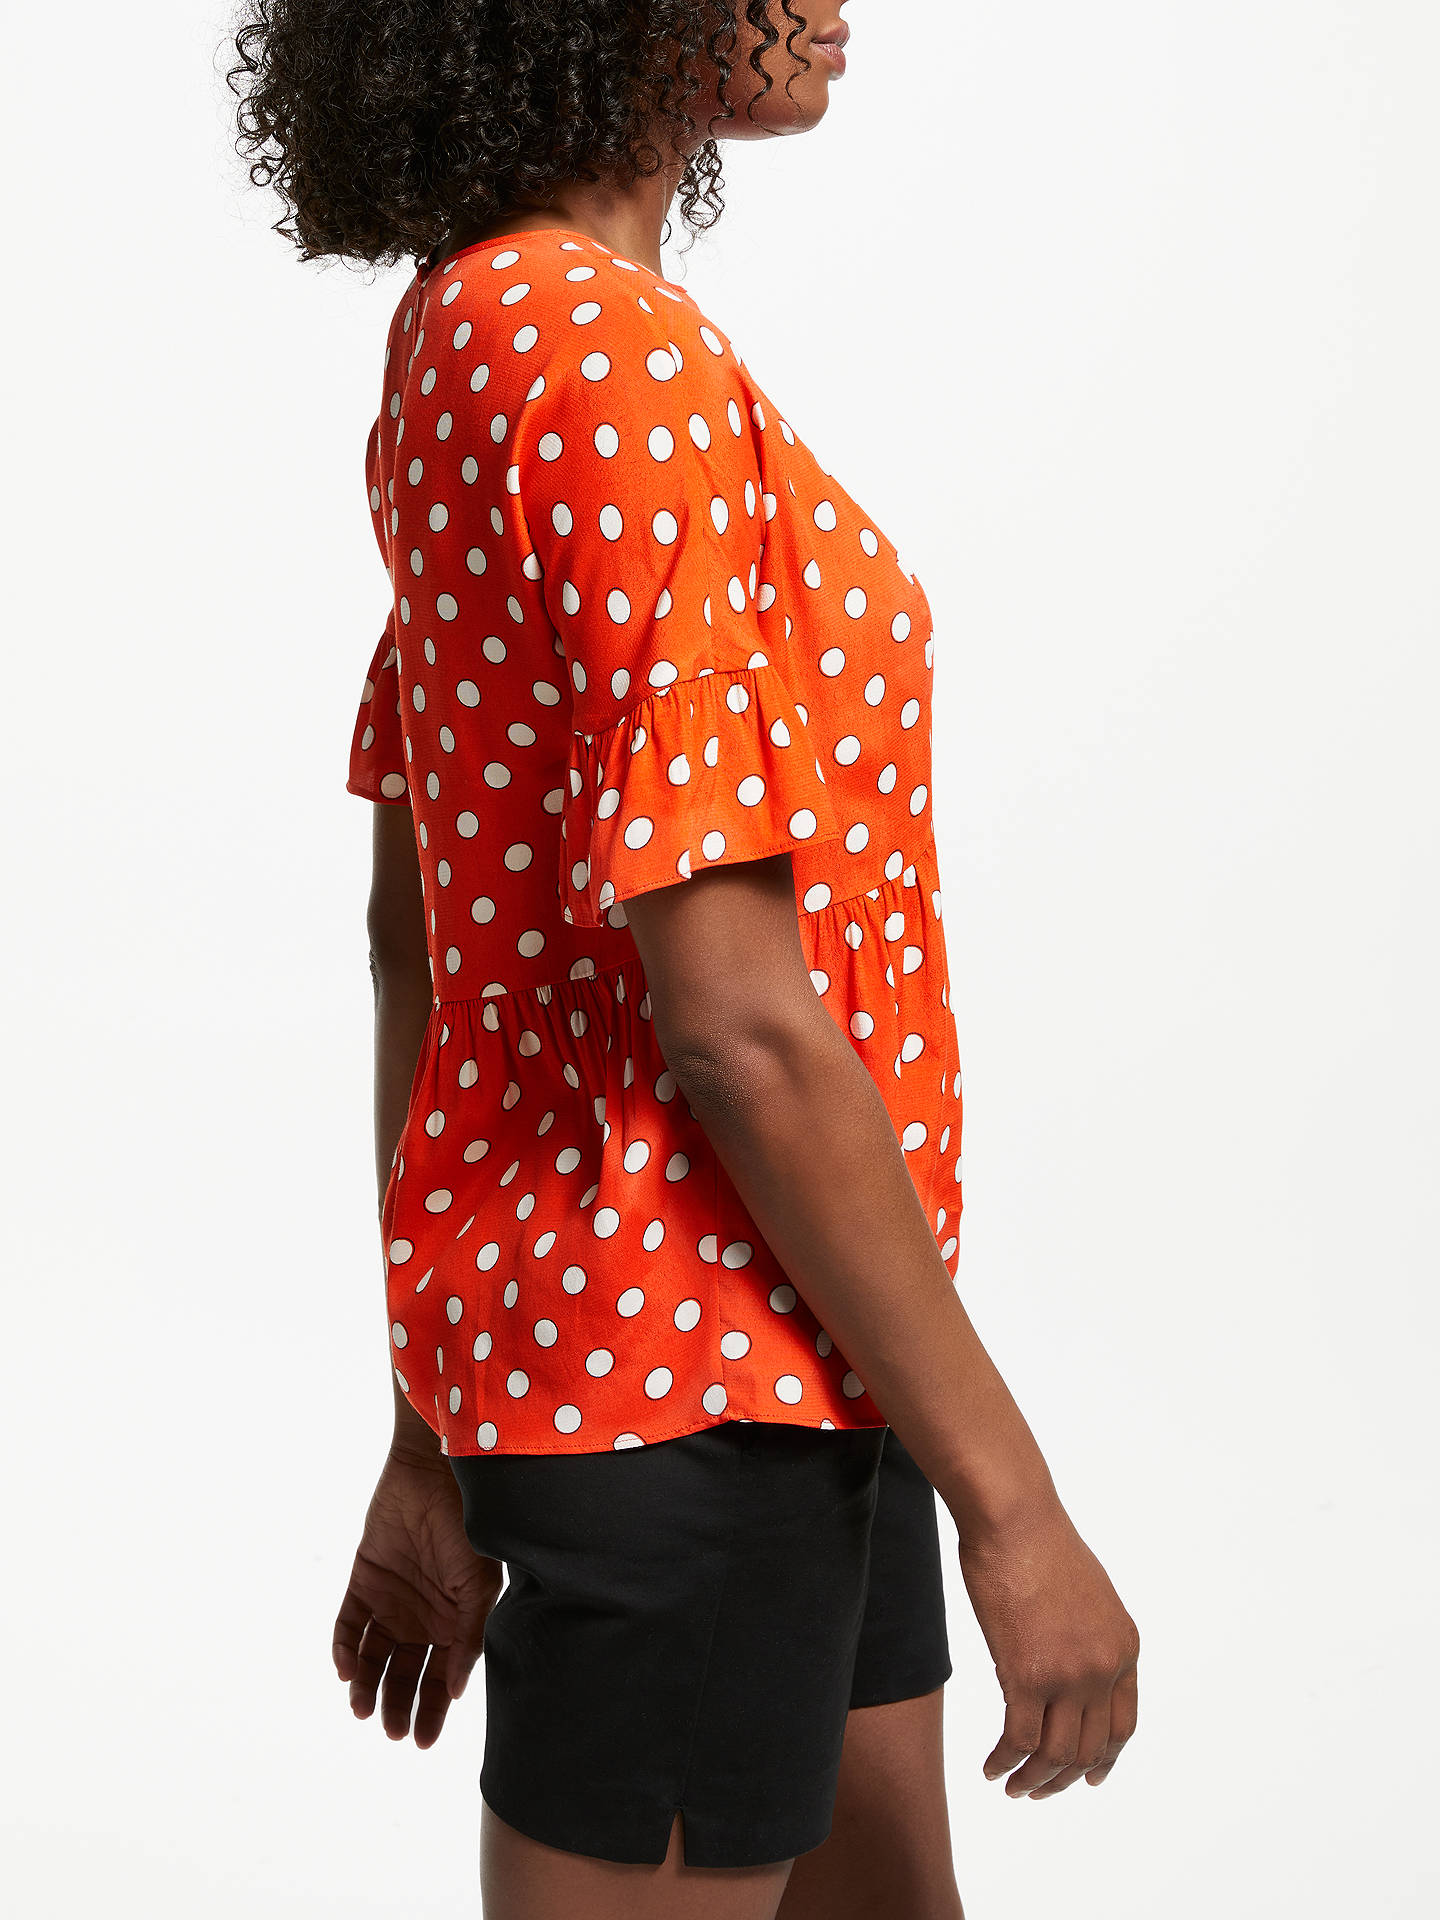 BuyBoden Caroline Polka Dot Top, Blood Orange, 8 Online at johnlewis.com